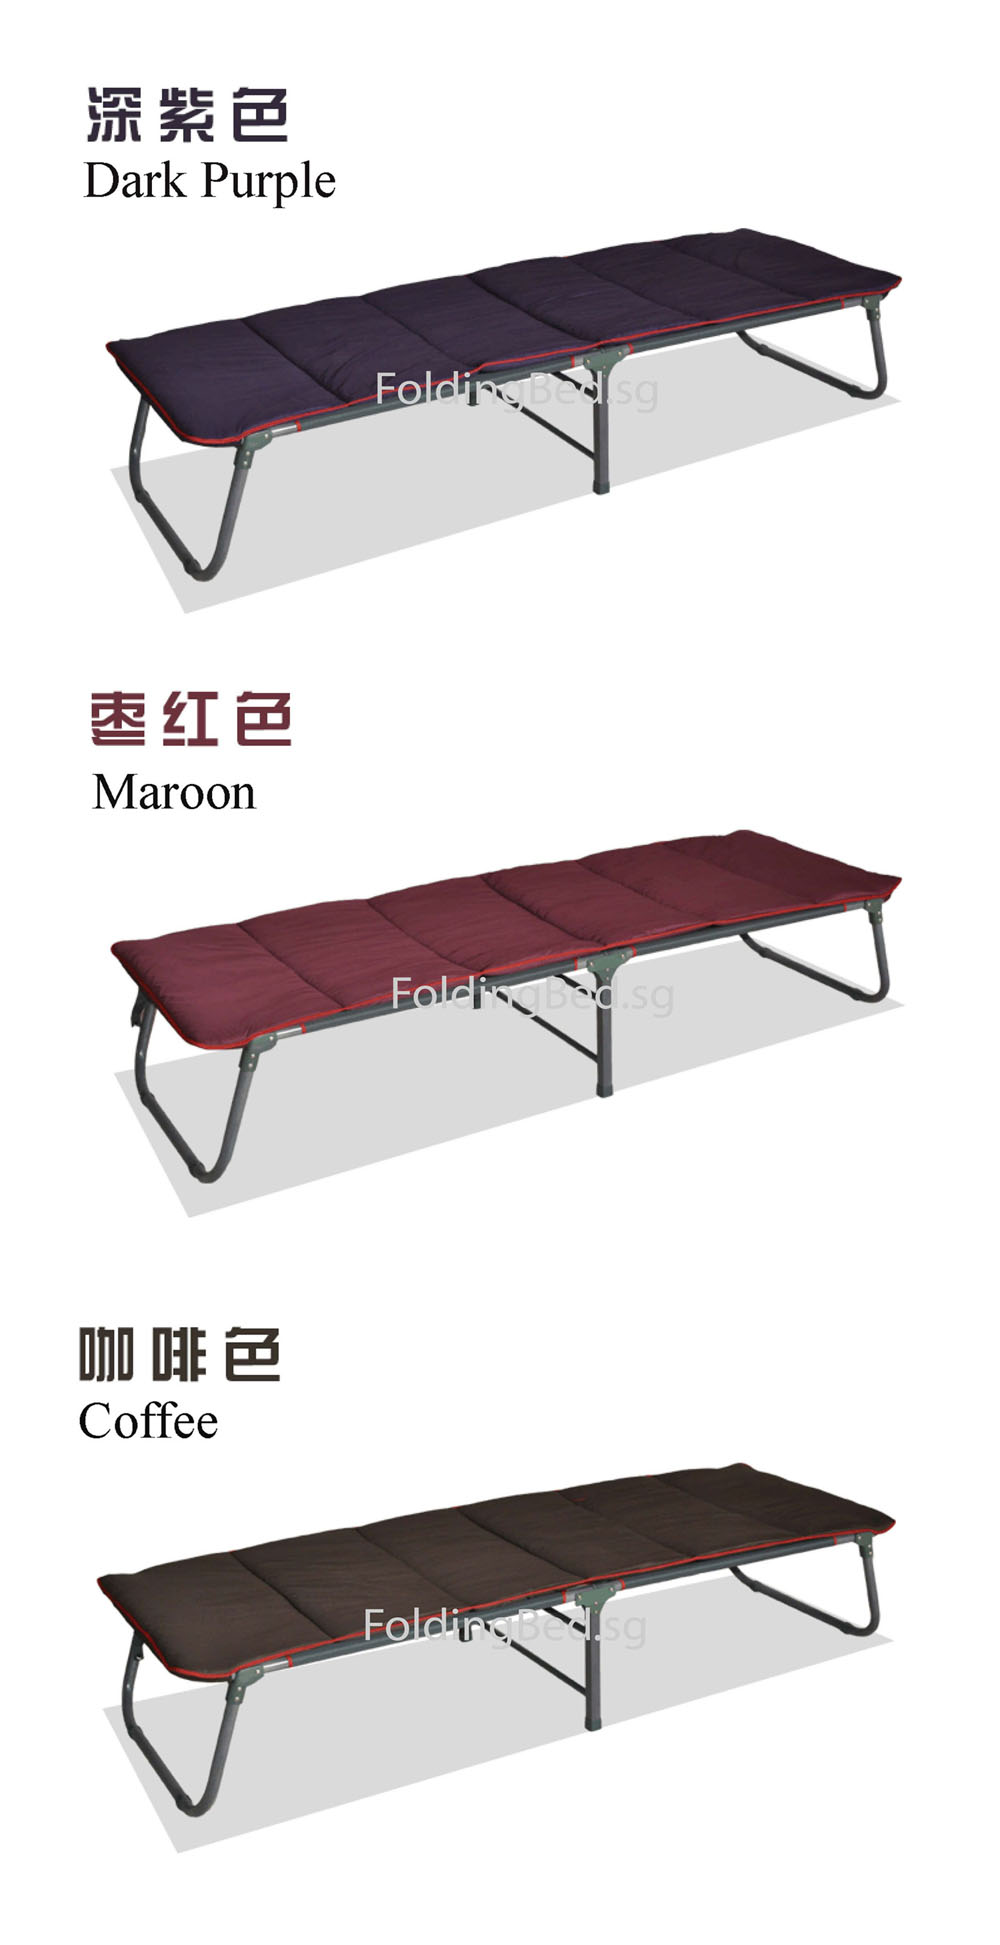 Folding Bed with Cover Sheet